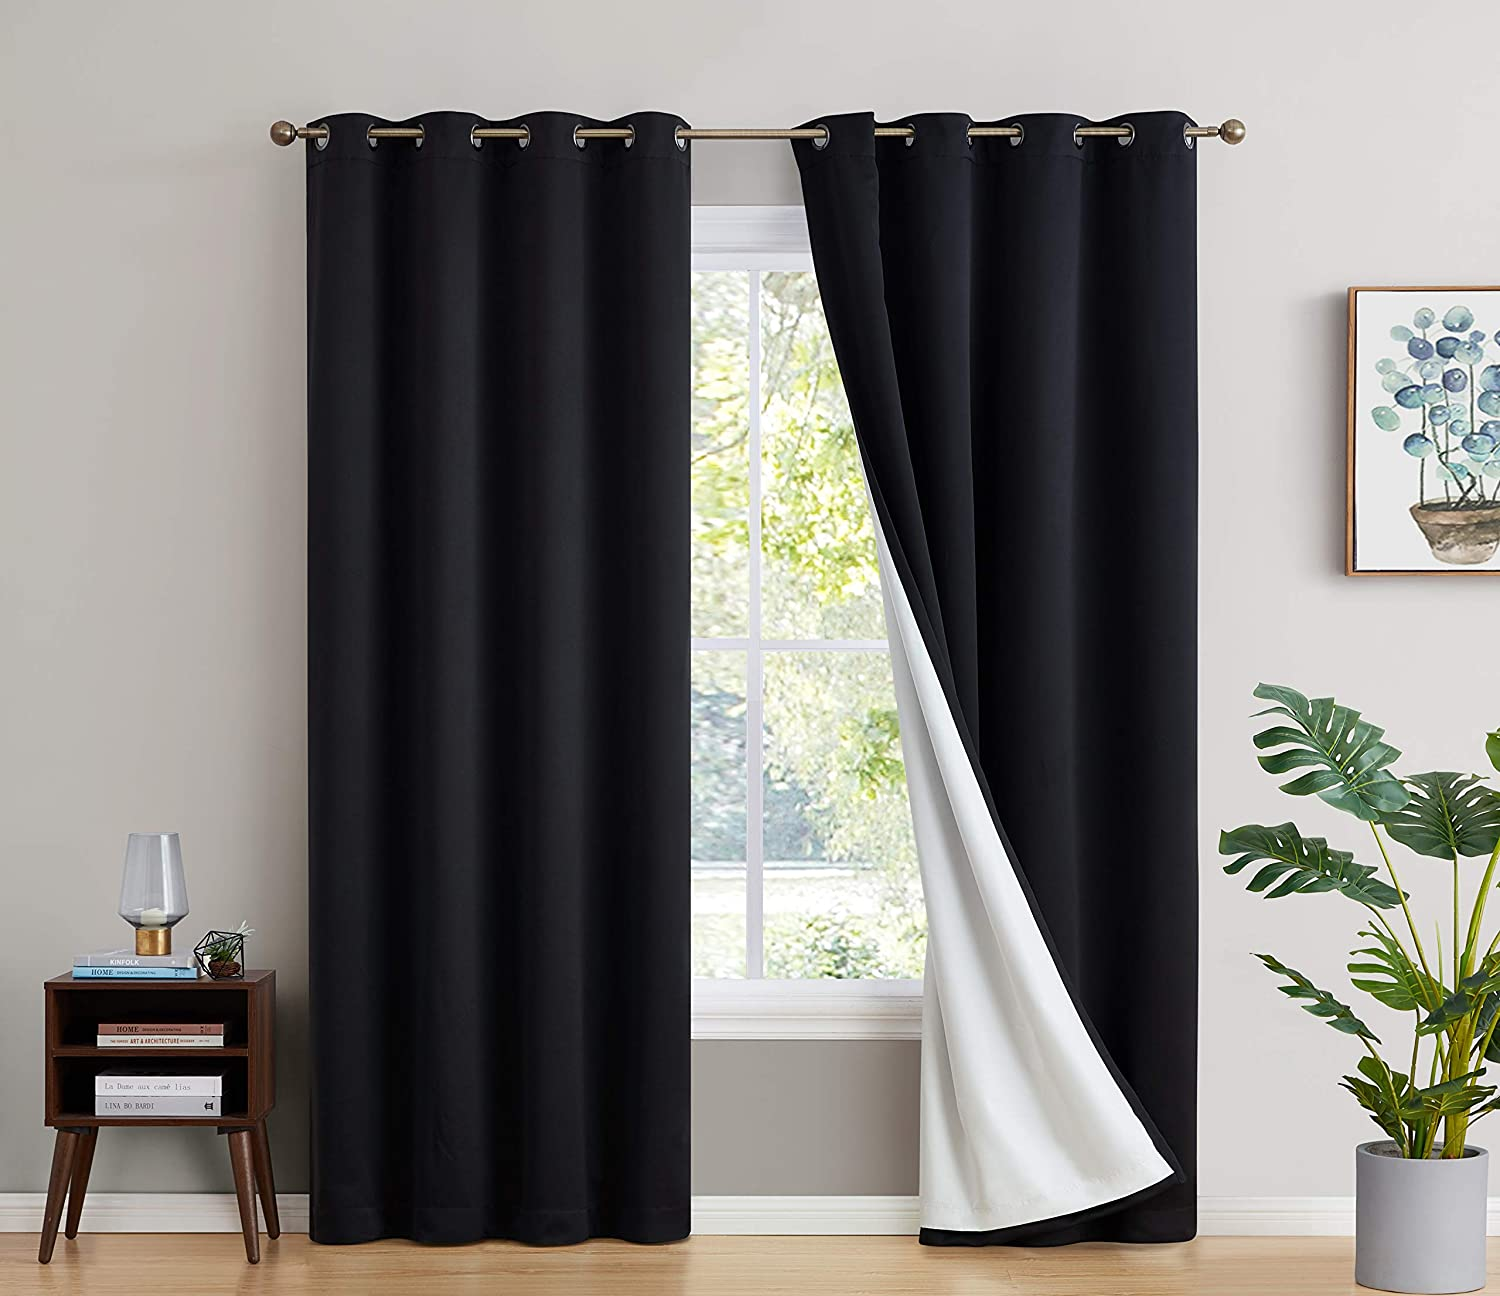 HLC.ME 100% Complete Full Blackout Lined Drapery with Thick Heavy Double Layer Thermal Insulated Soundproof Long Window Curtain Grommet Panels for Bedroom...